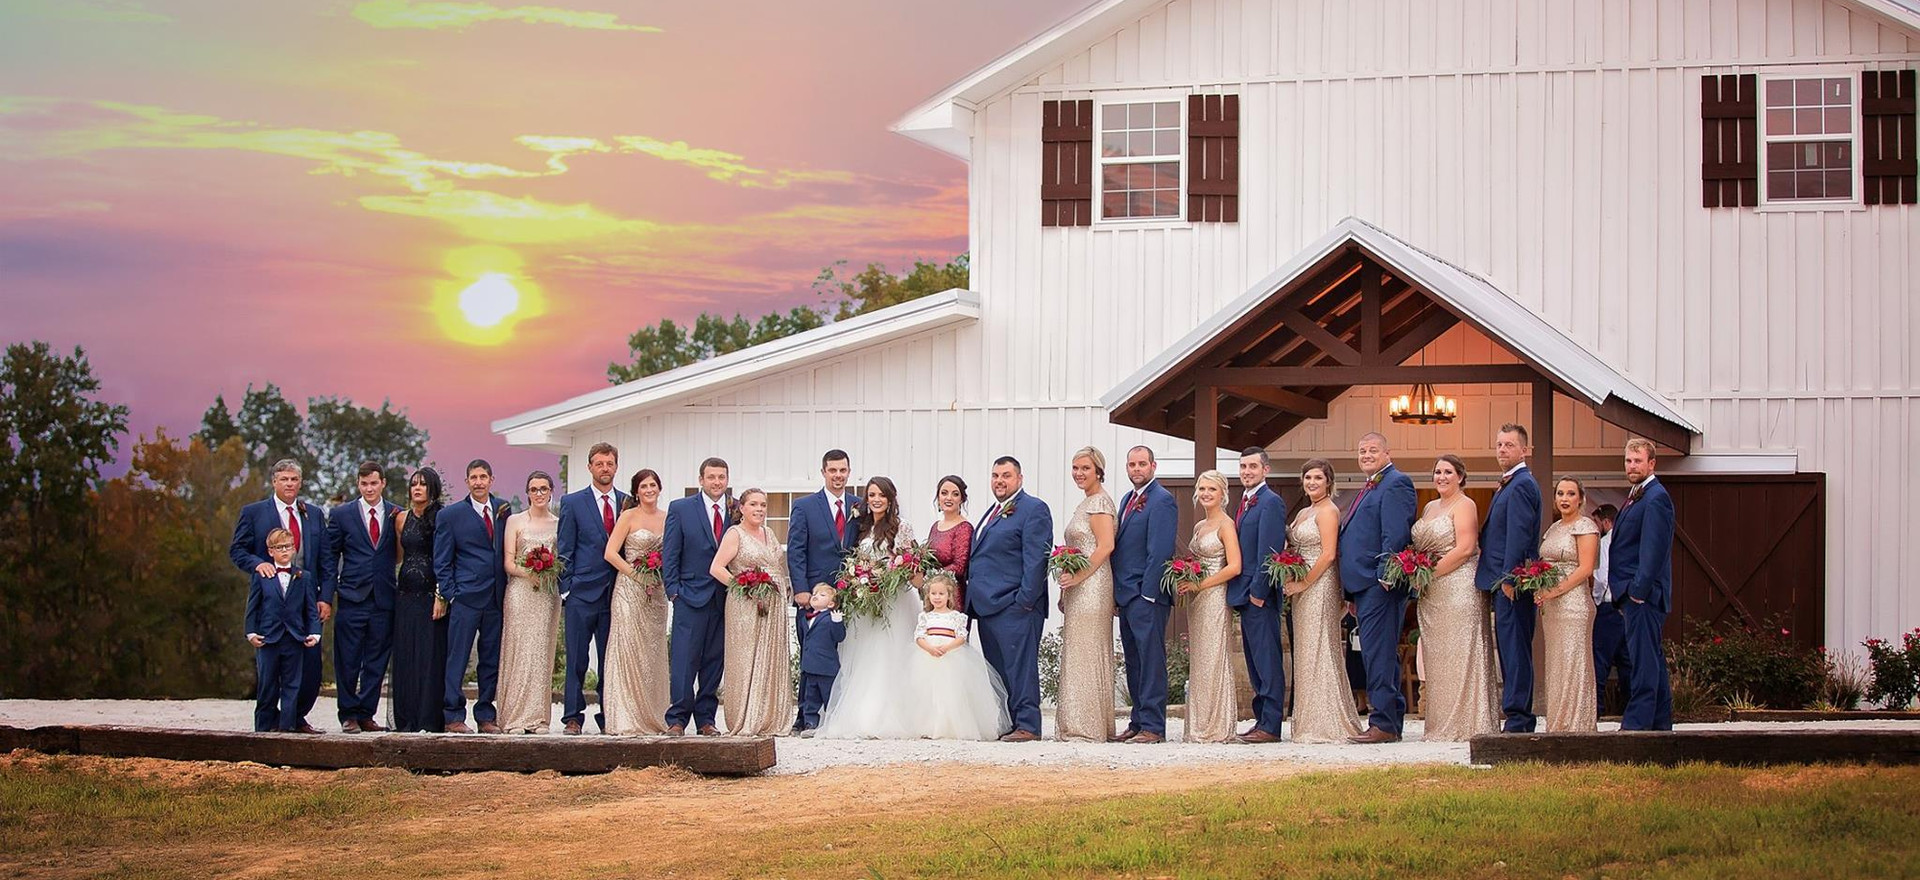 Wedding Picture in Front of Barn